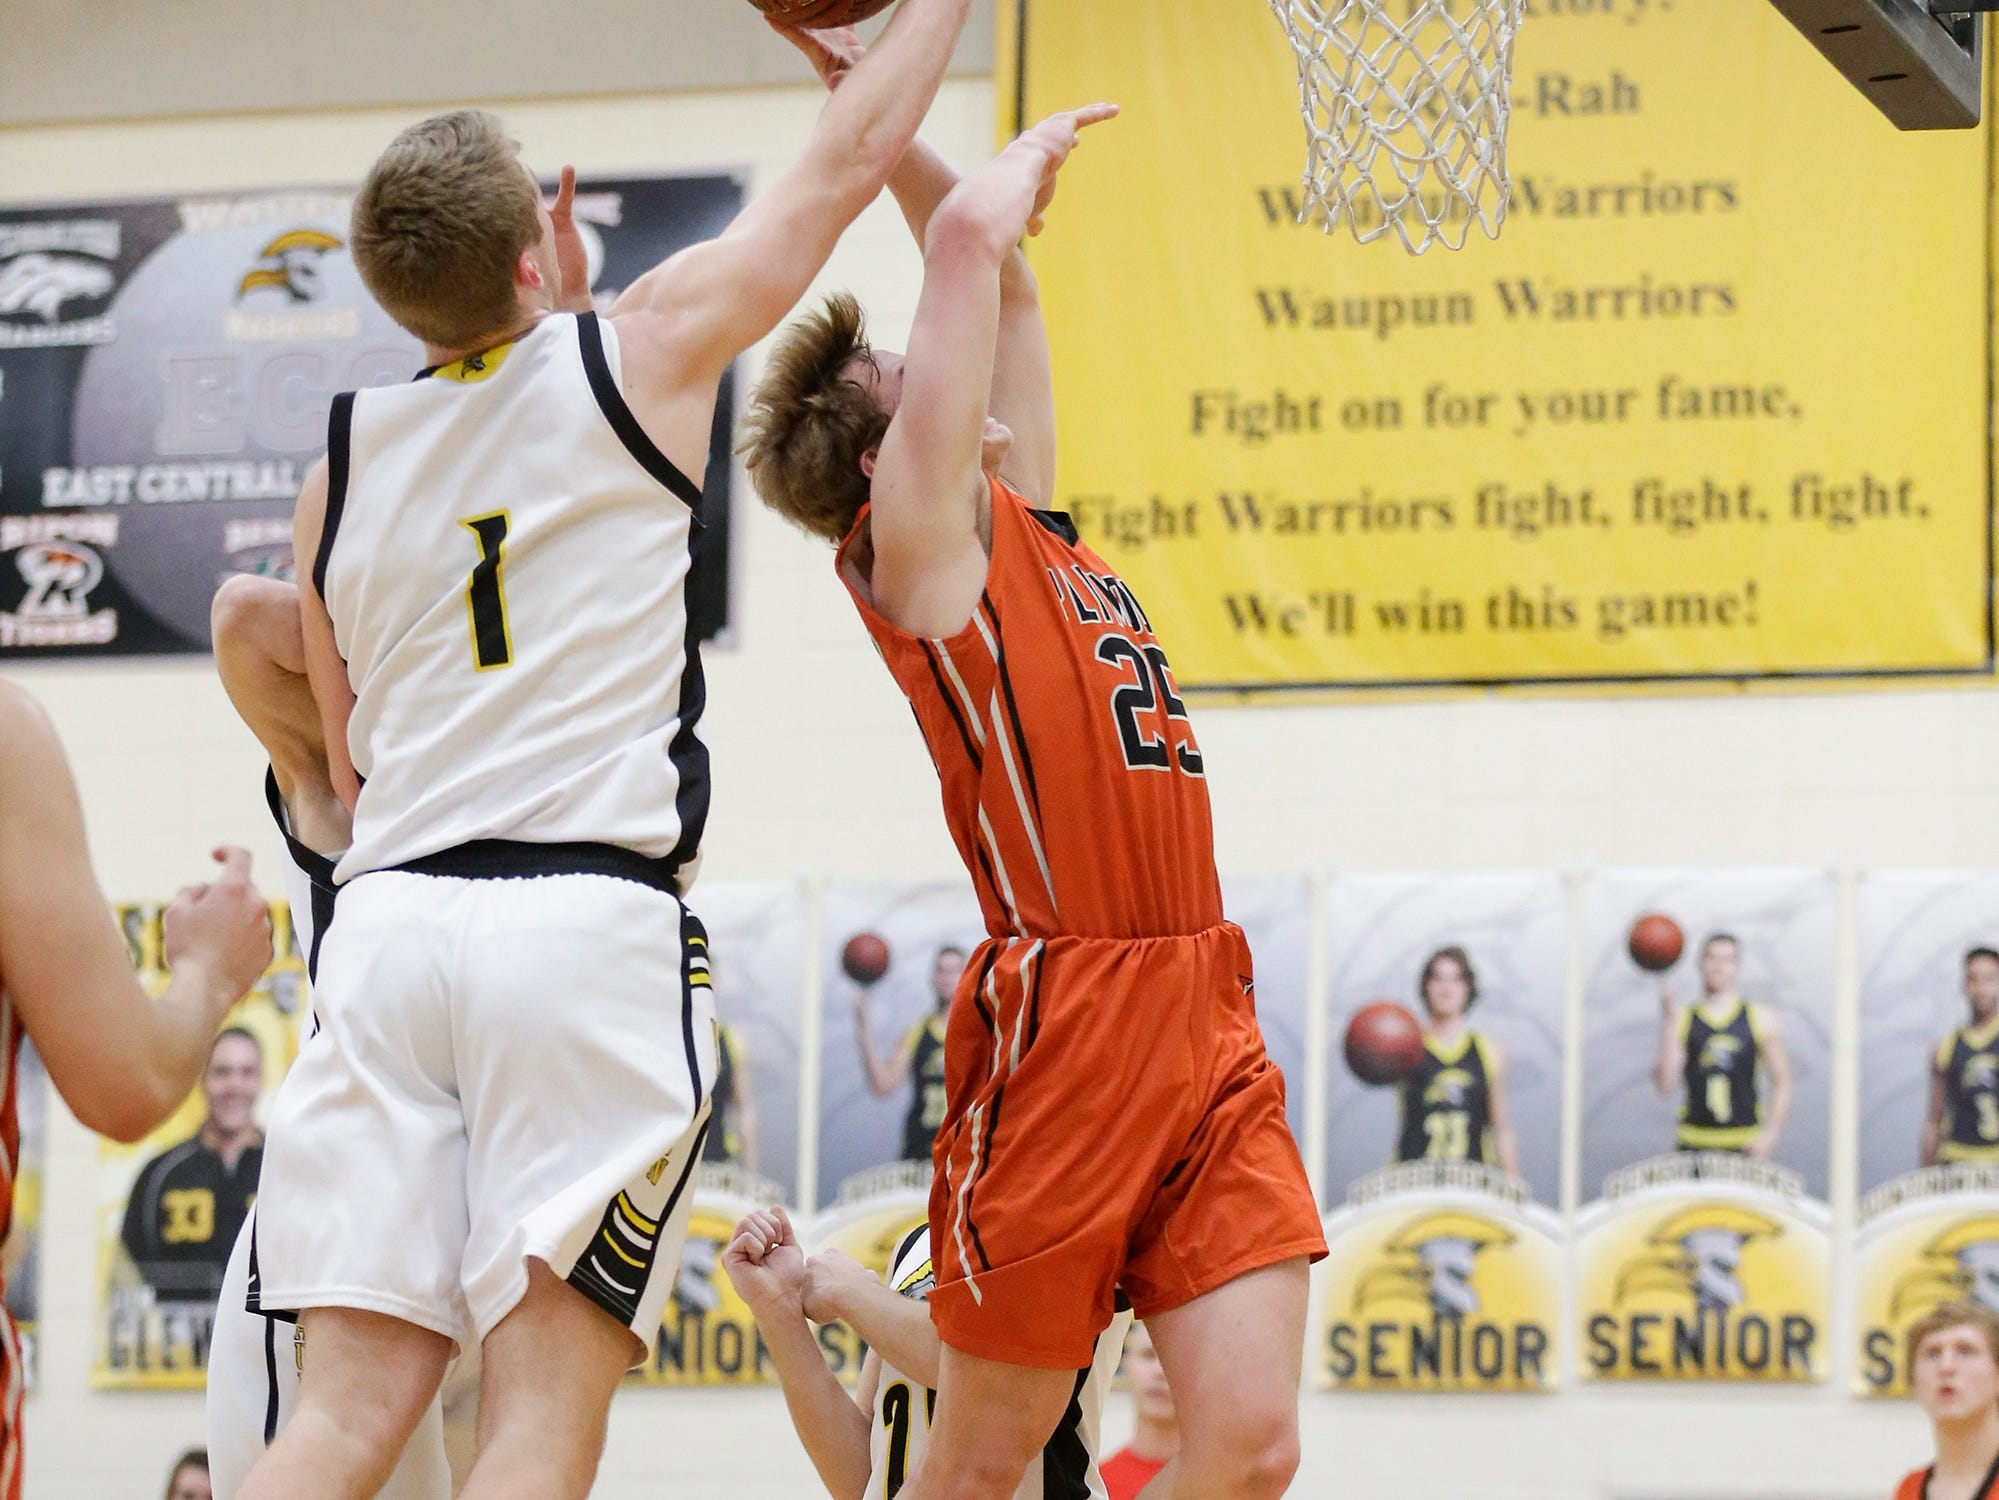 Waupun High School boys basketball's Marcus Domask (1) fouls Plymouth High School's Aiden Reilly (25) during their game Friday, February 15, 2019 in Waupun. Doug Raflik/USA TODAY NETWORK-Wisconsin